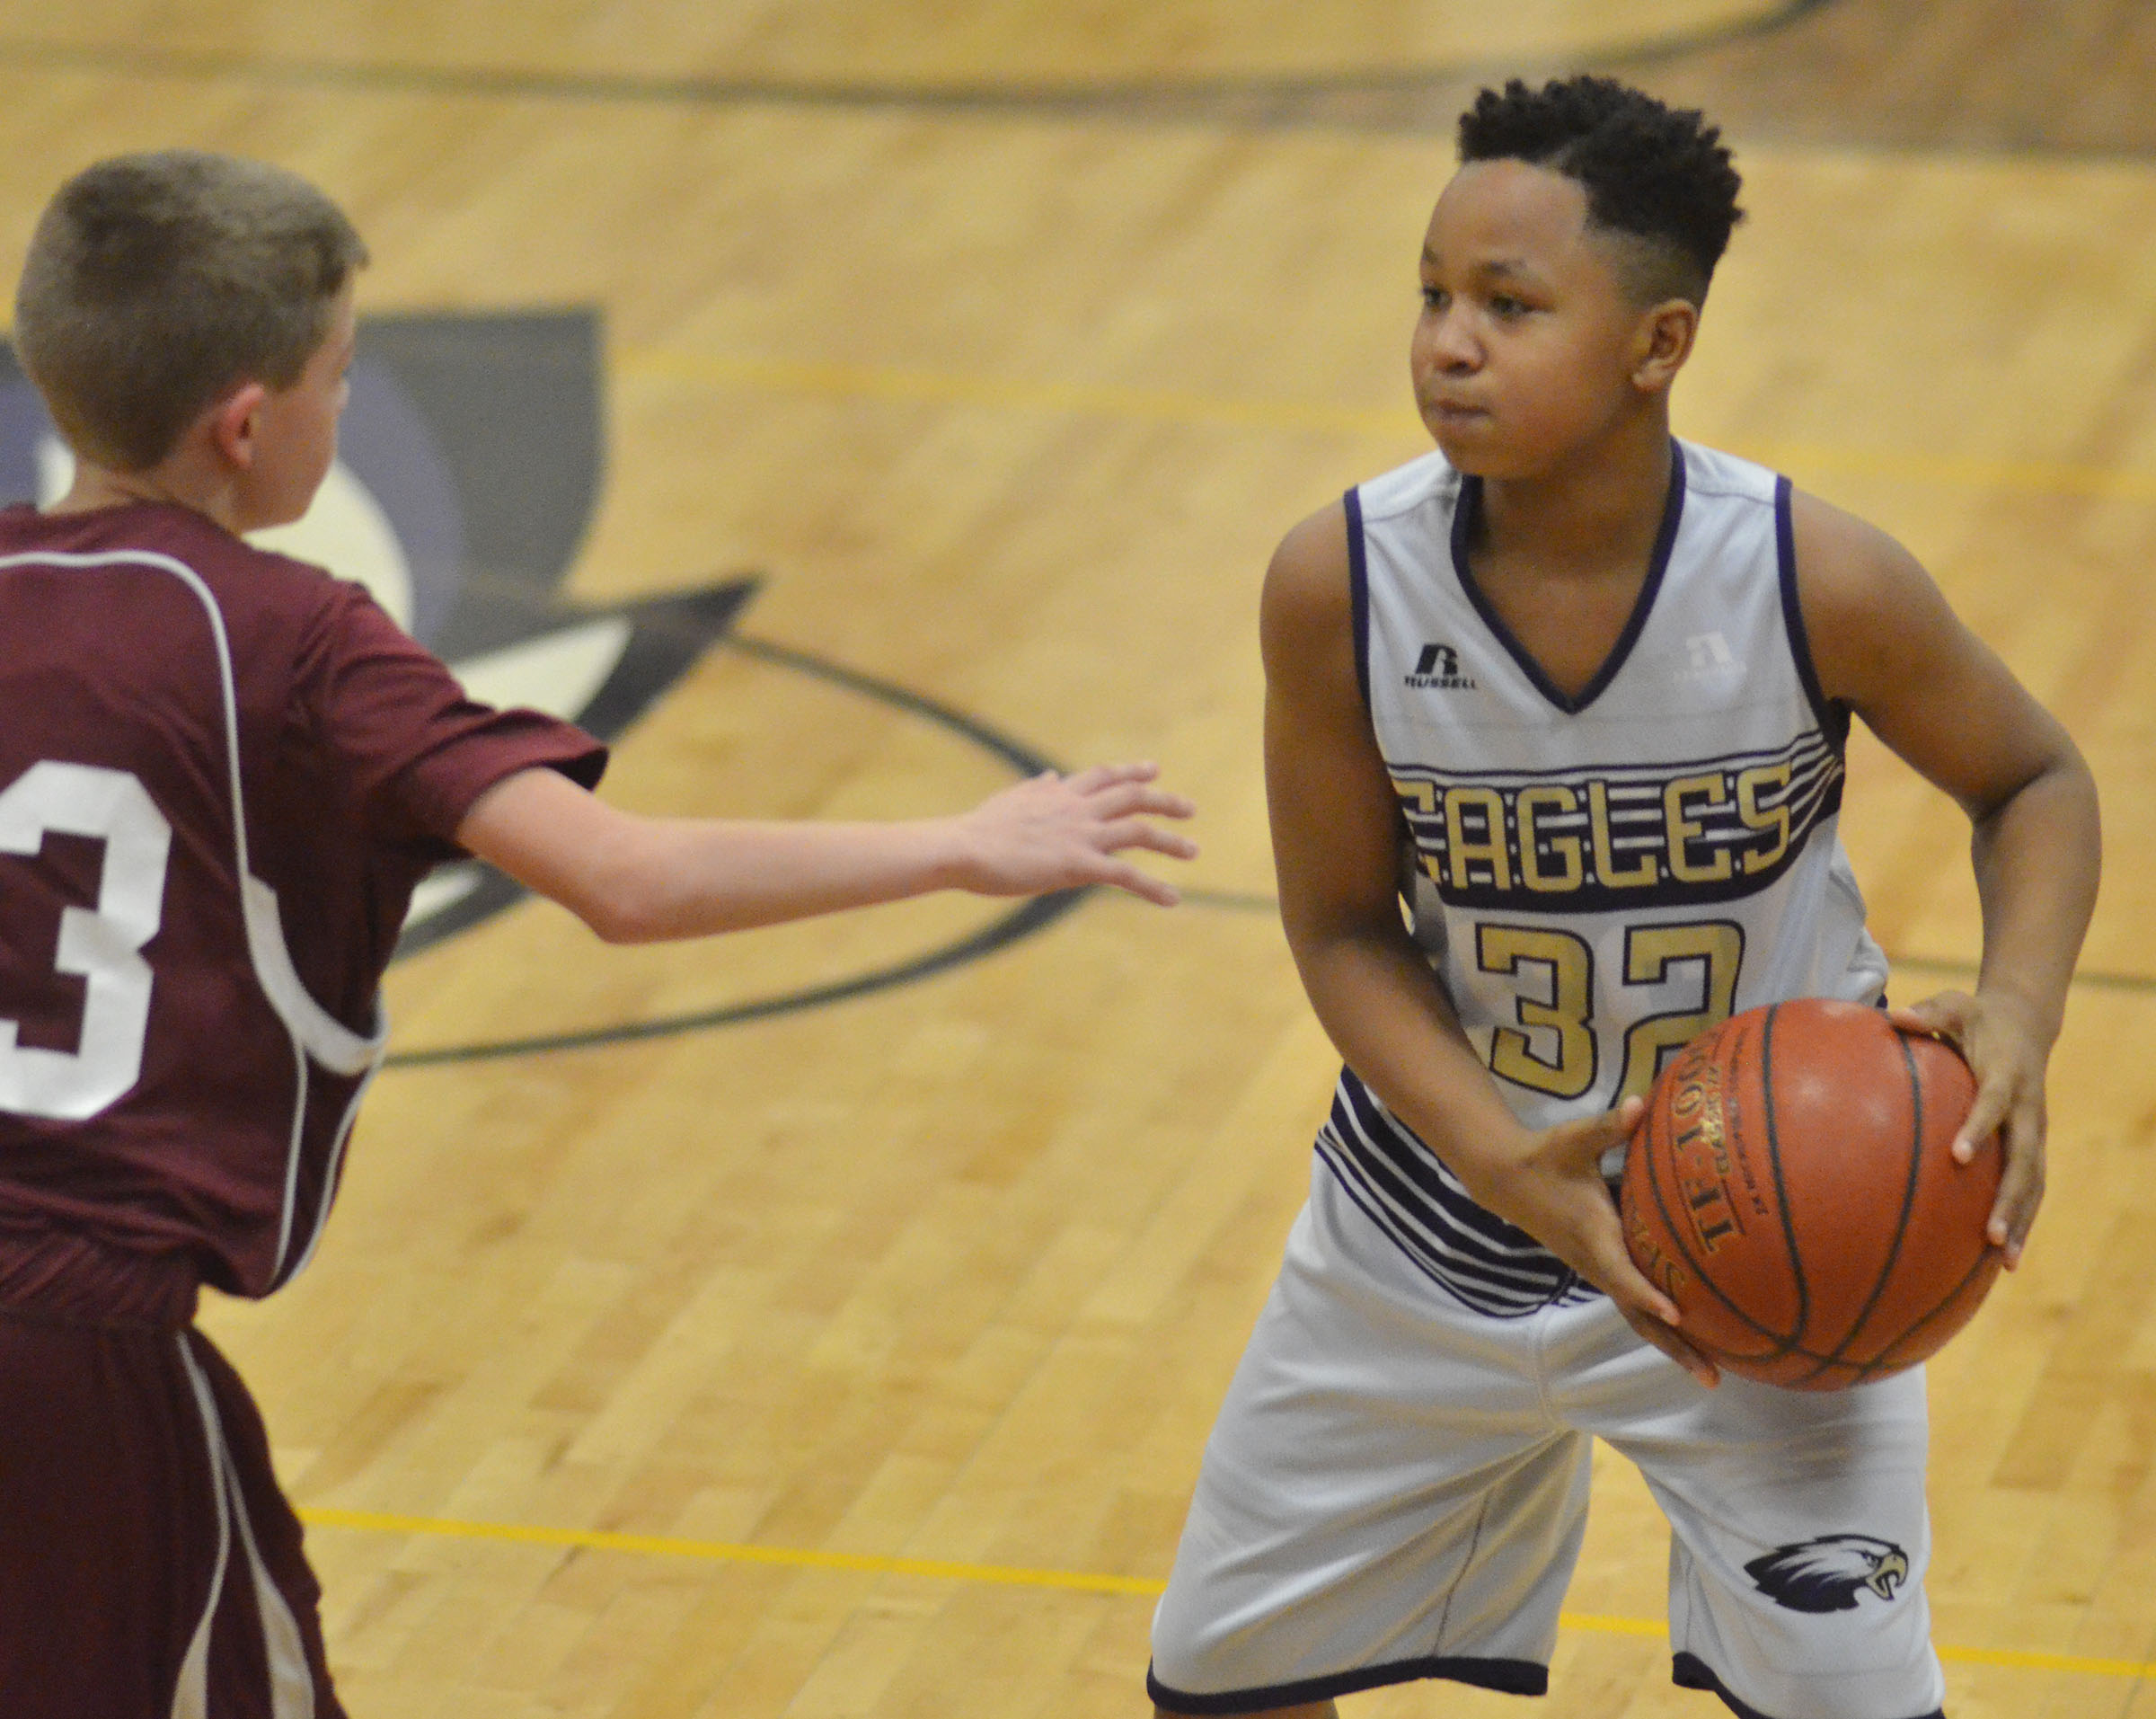 CMS sixth-grader Deondre Weathers protects the ball.